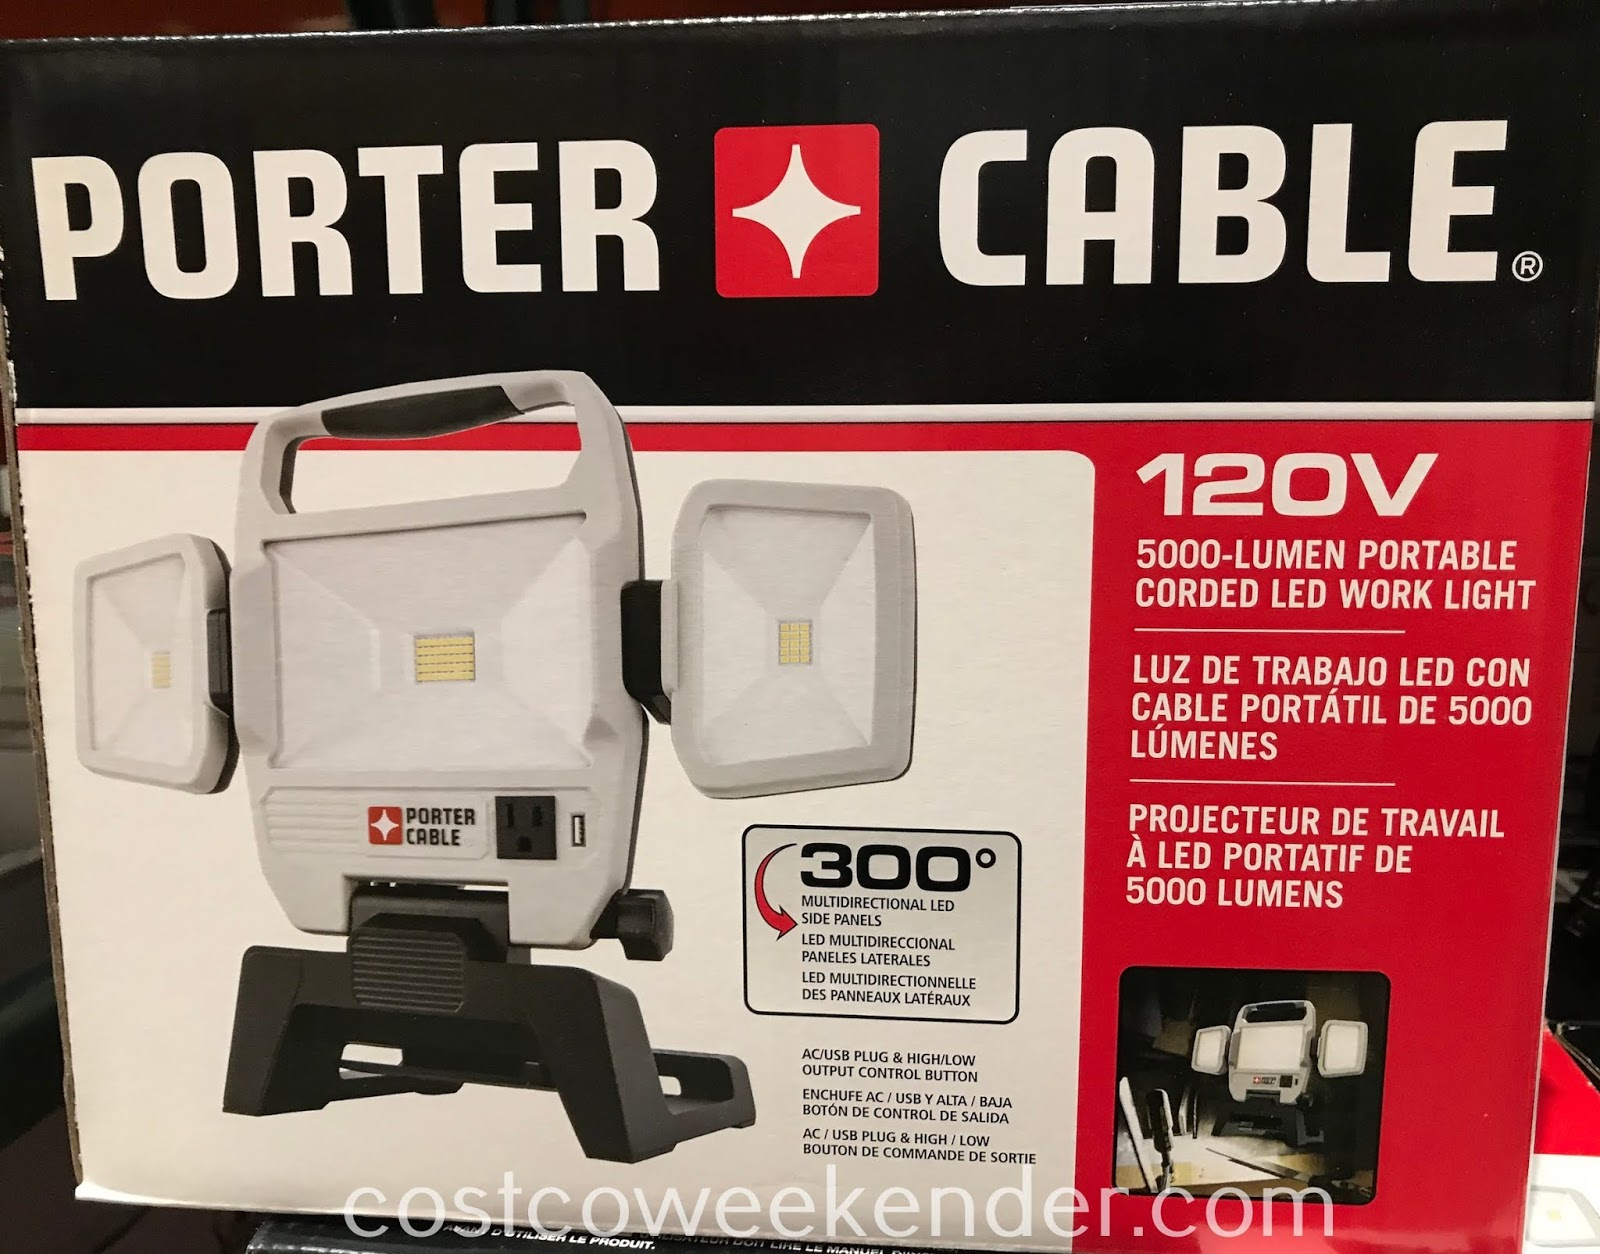 Get more done by brightening up your workspace with the Porter Cable Portable Corded LED Work Light